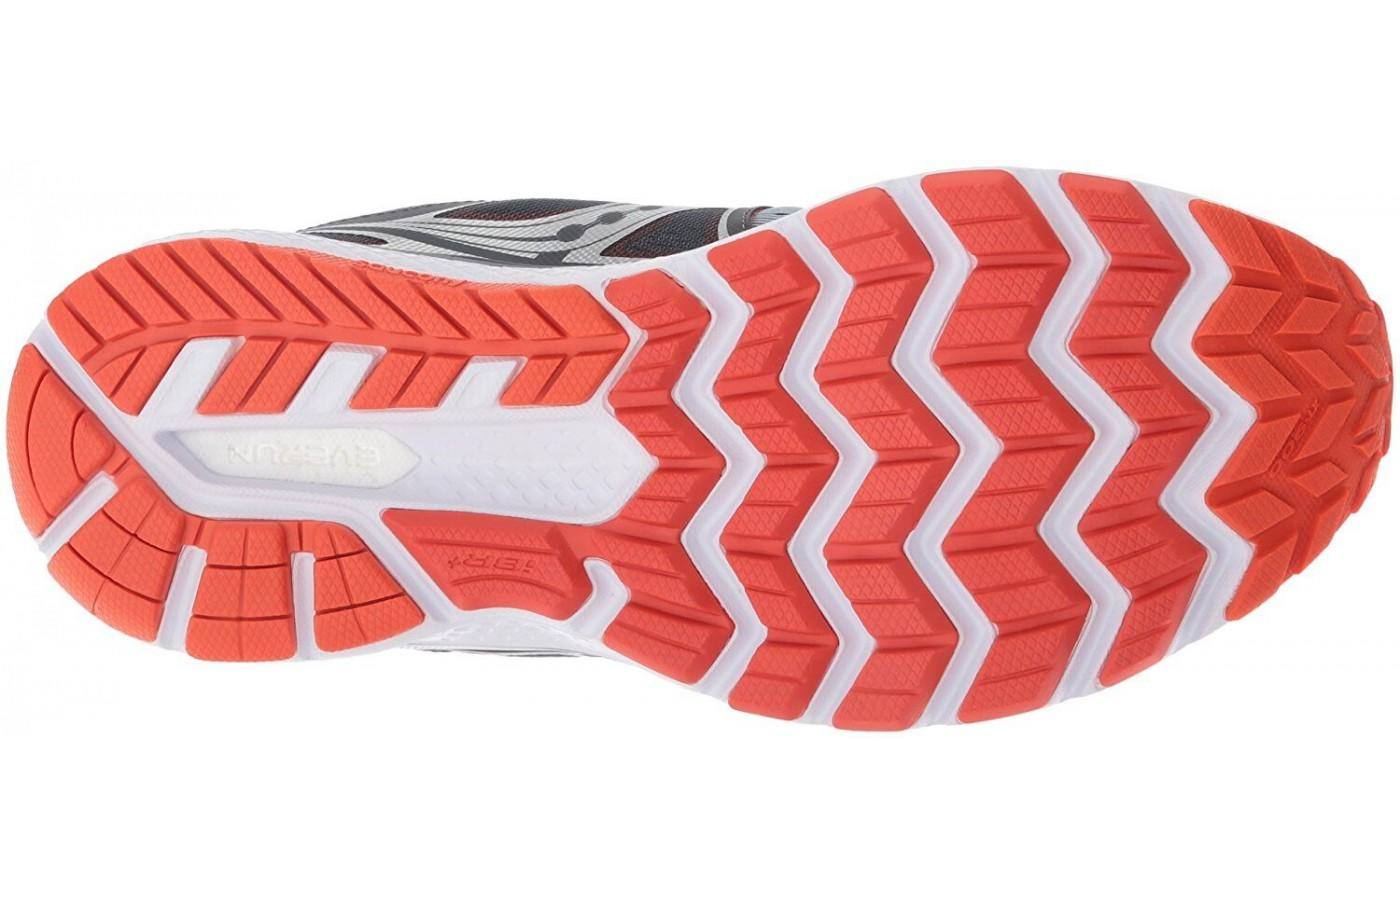 abd267b81f81 ... The TRI-FLEX outsole pattern of the Saucony Triumph ISO 3 running shoe  ...